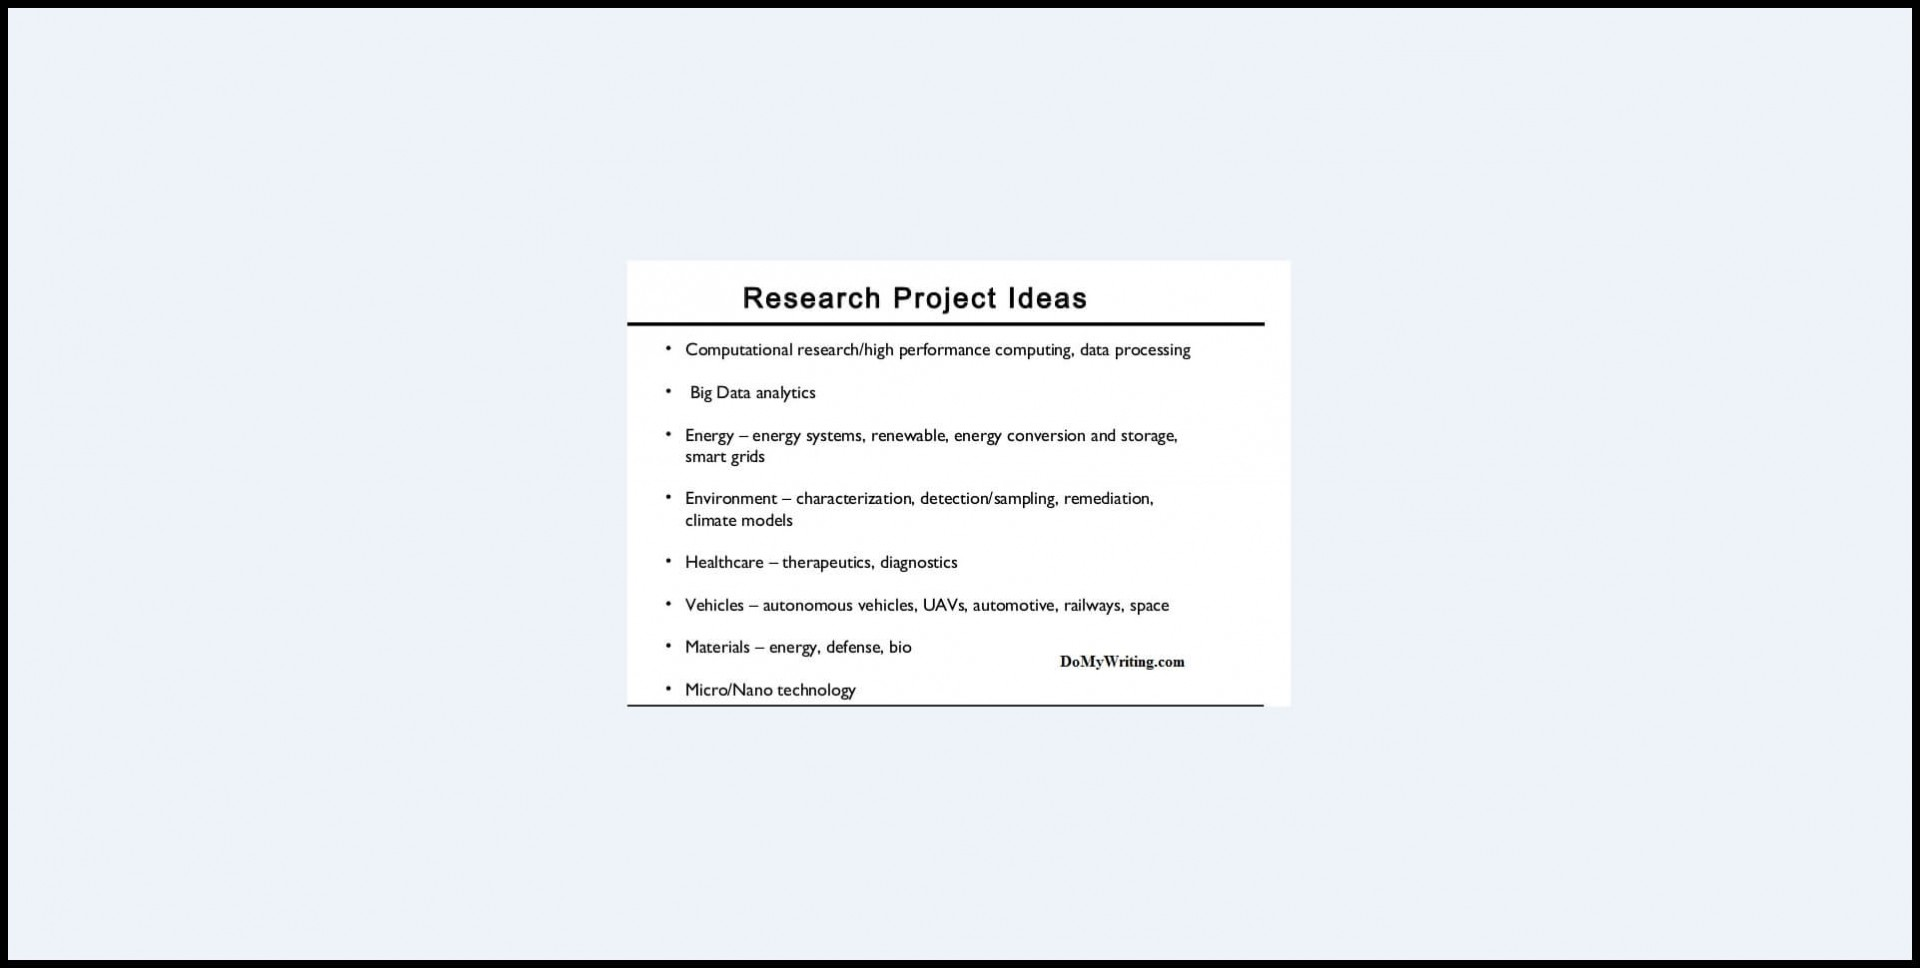 004 Research Project Ideas Paper Cool Topics To Do Wonderful A On Good Interesting 1920